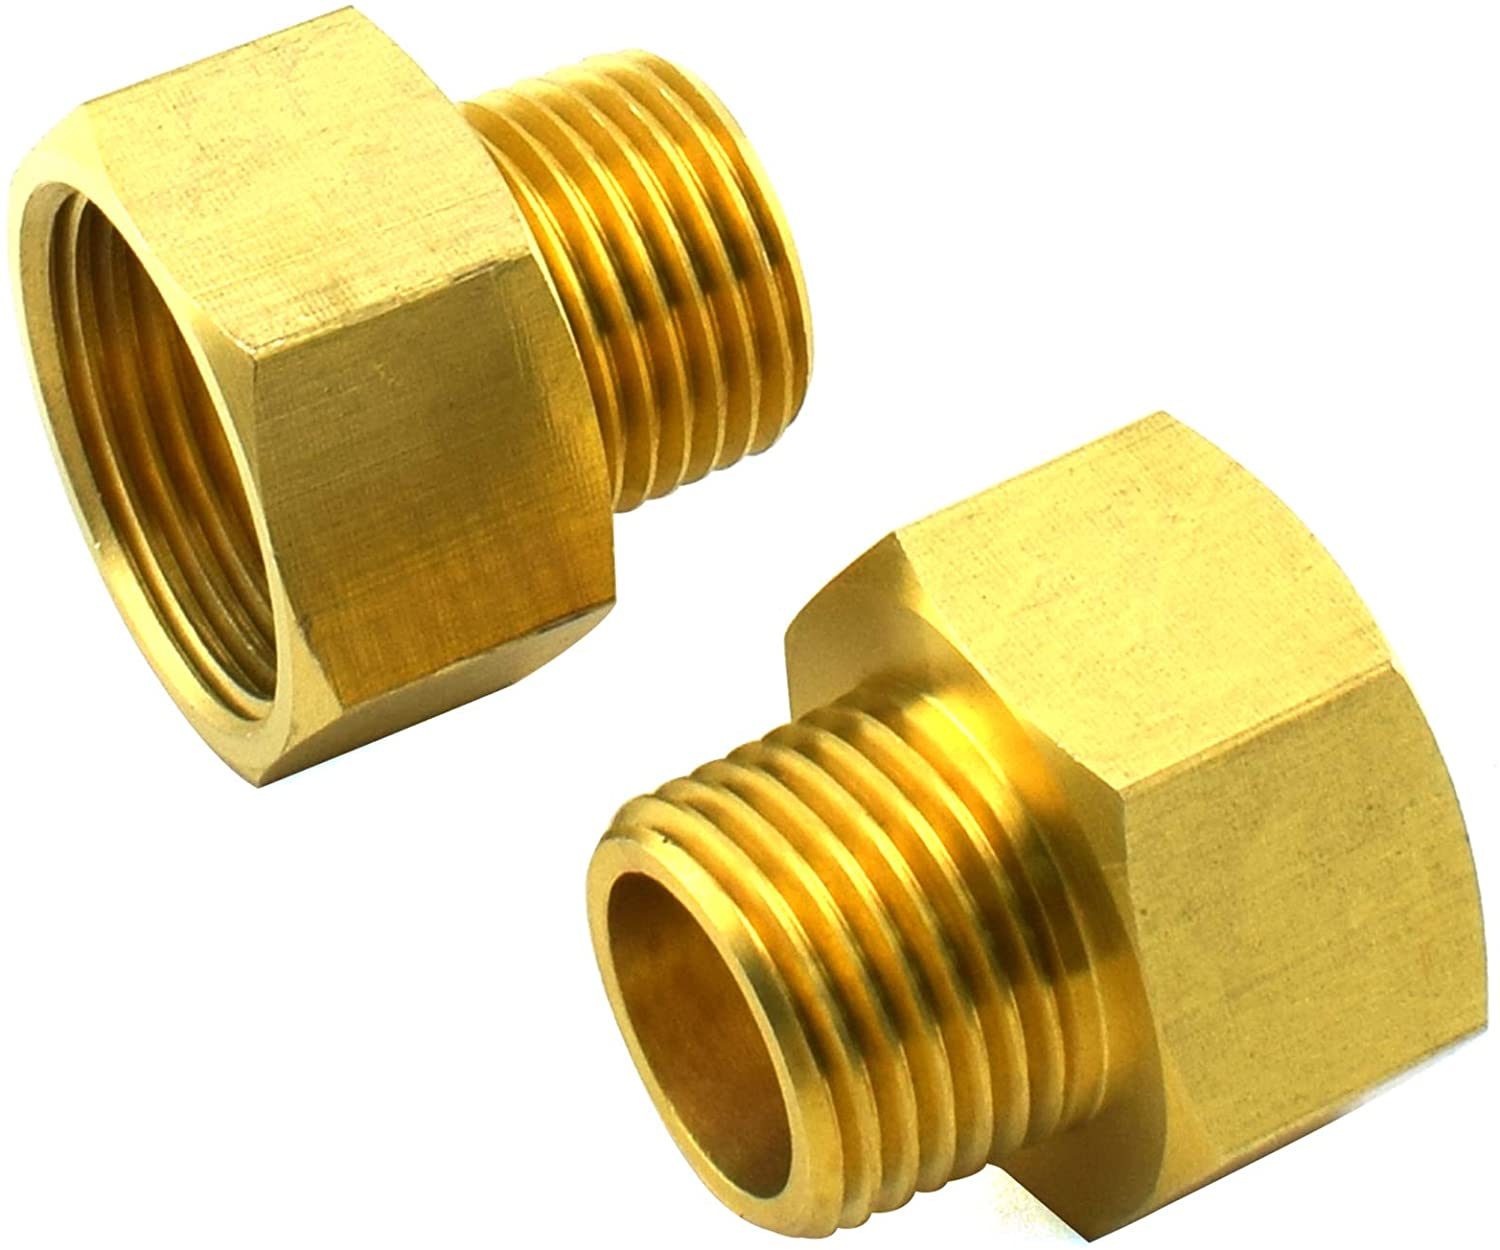 SDTC Tech 2-Pack Brass Pipe Fitting 1/2